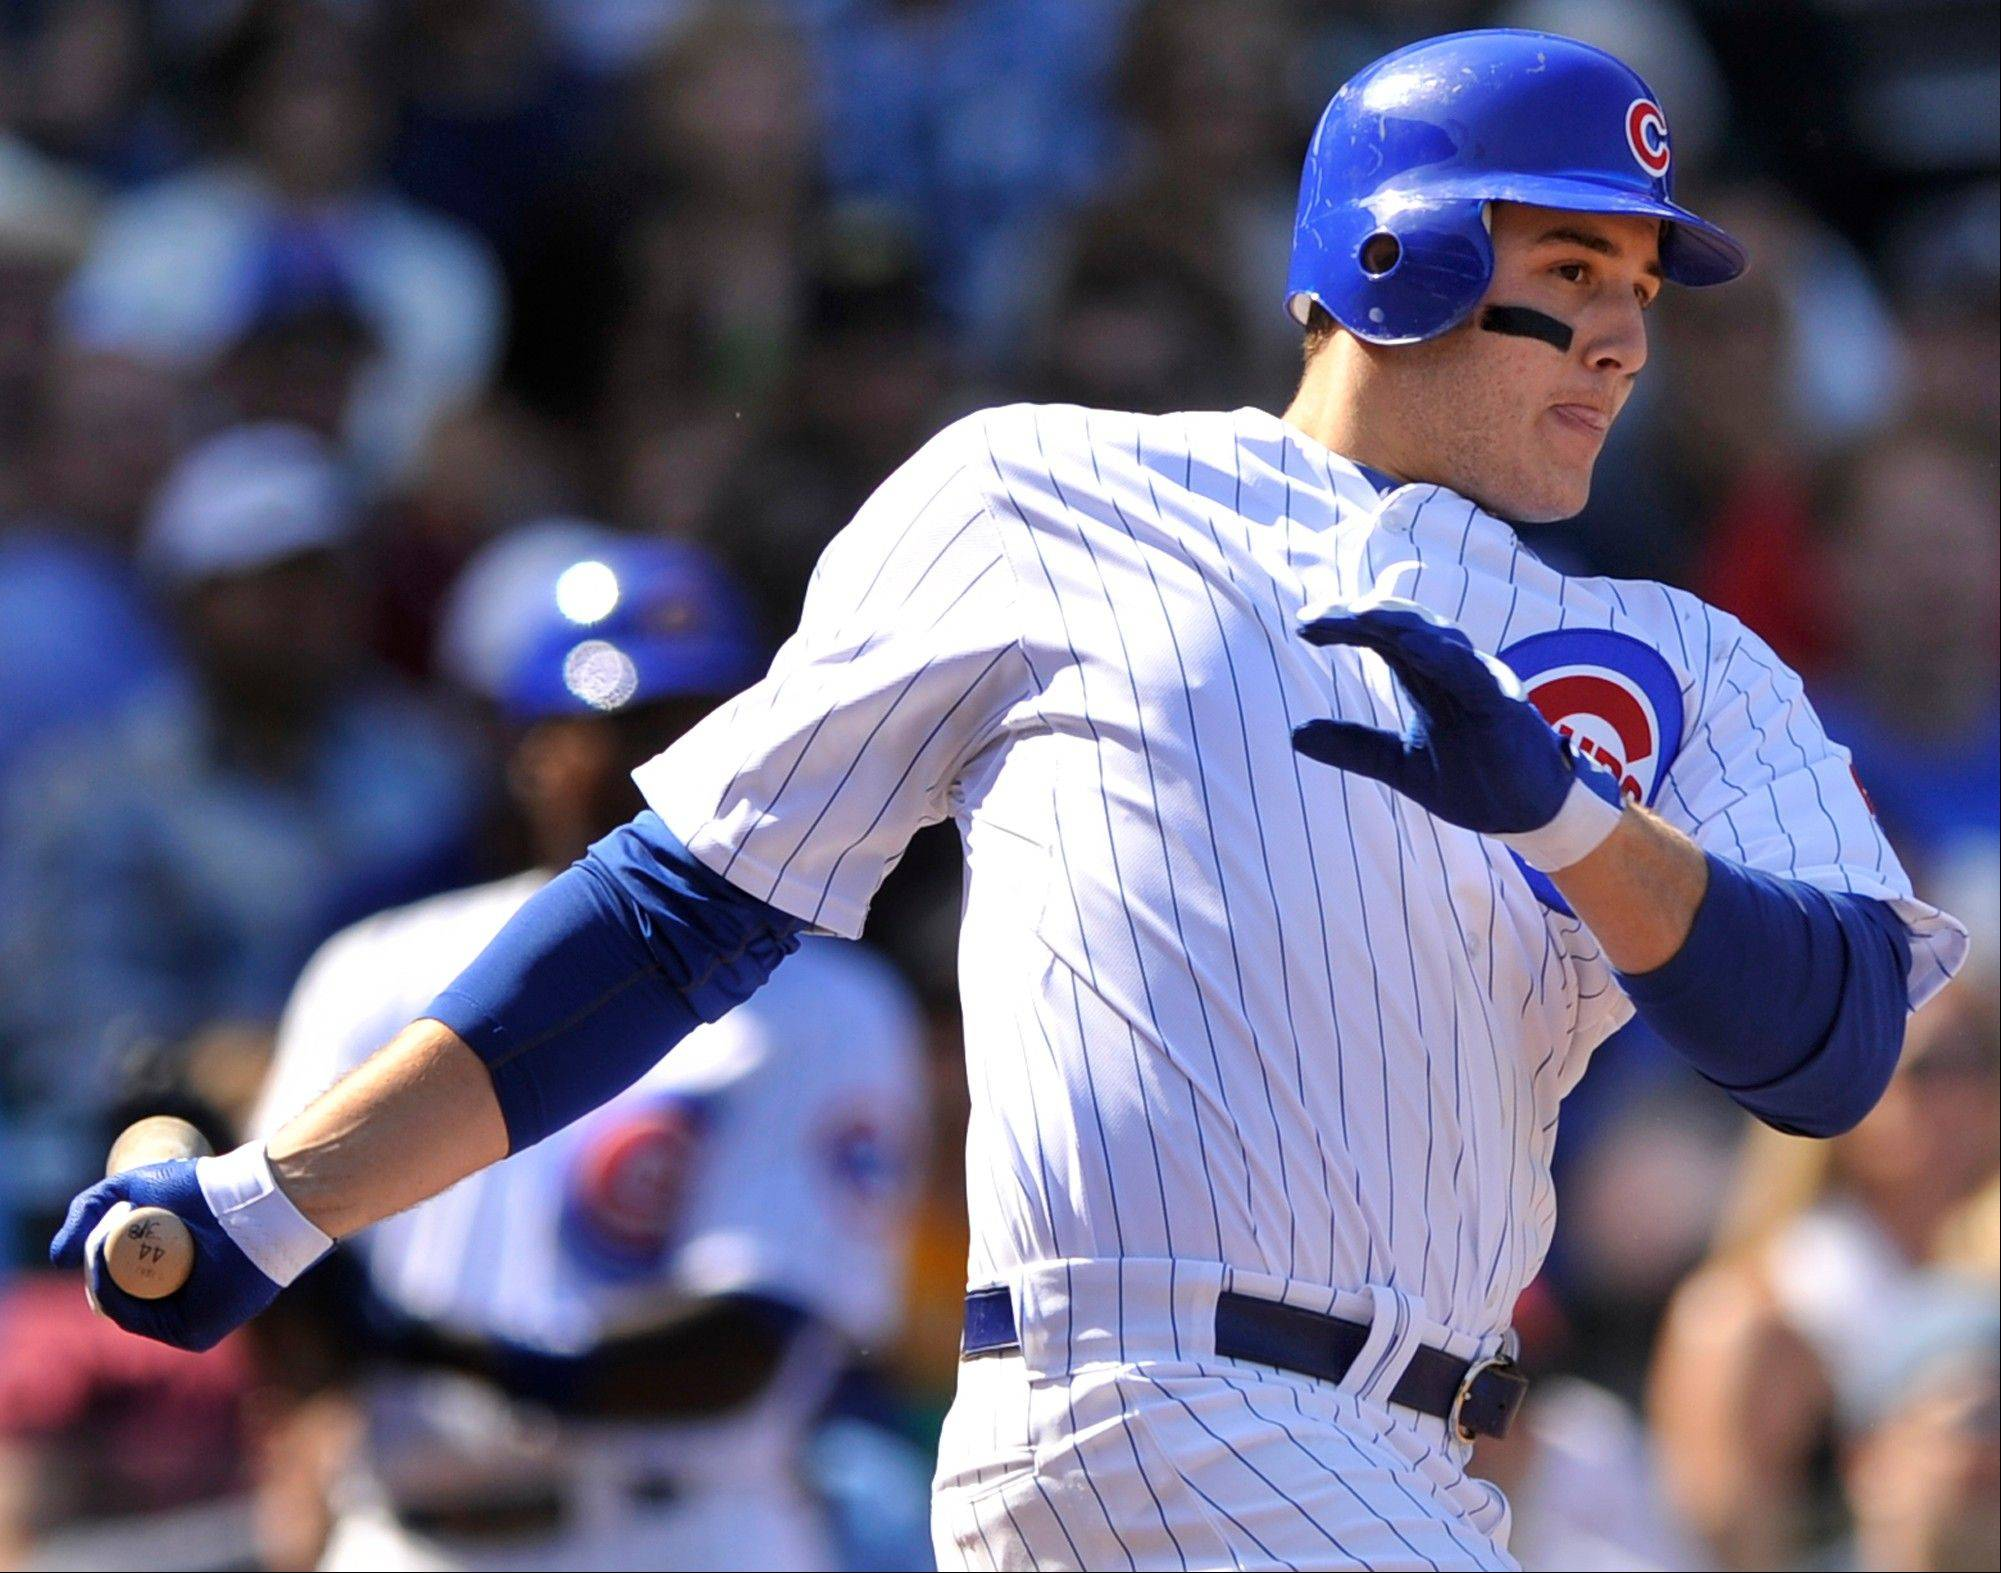 International stage awaits Cubs' Rizzo